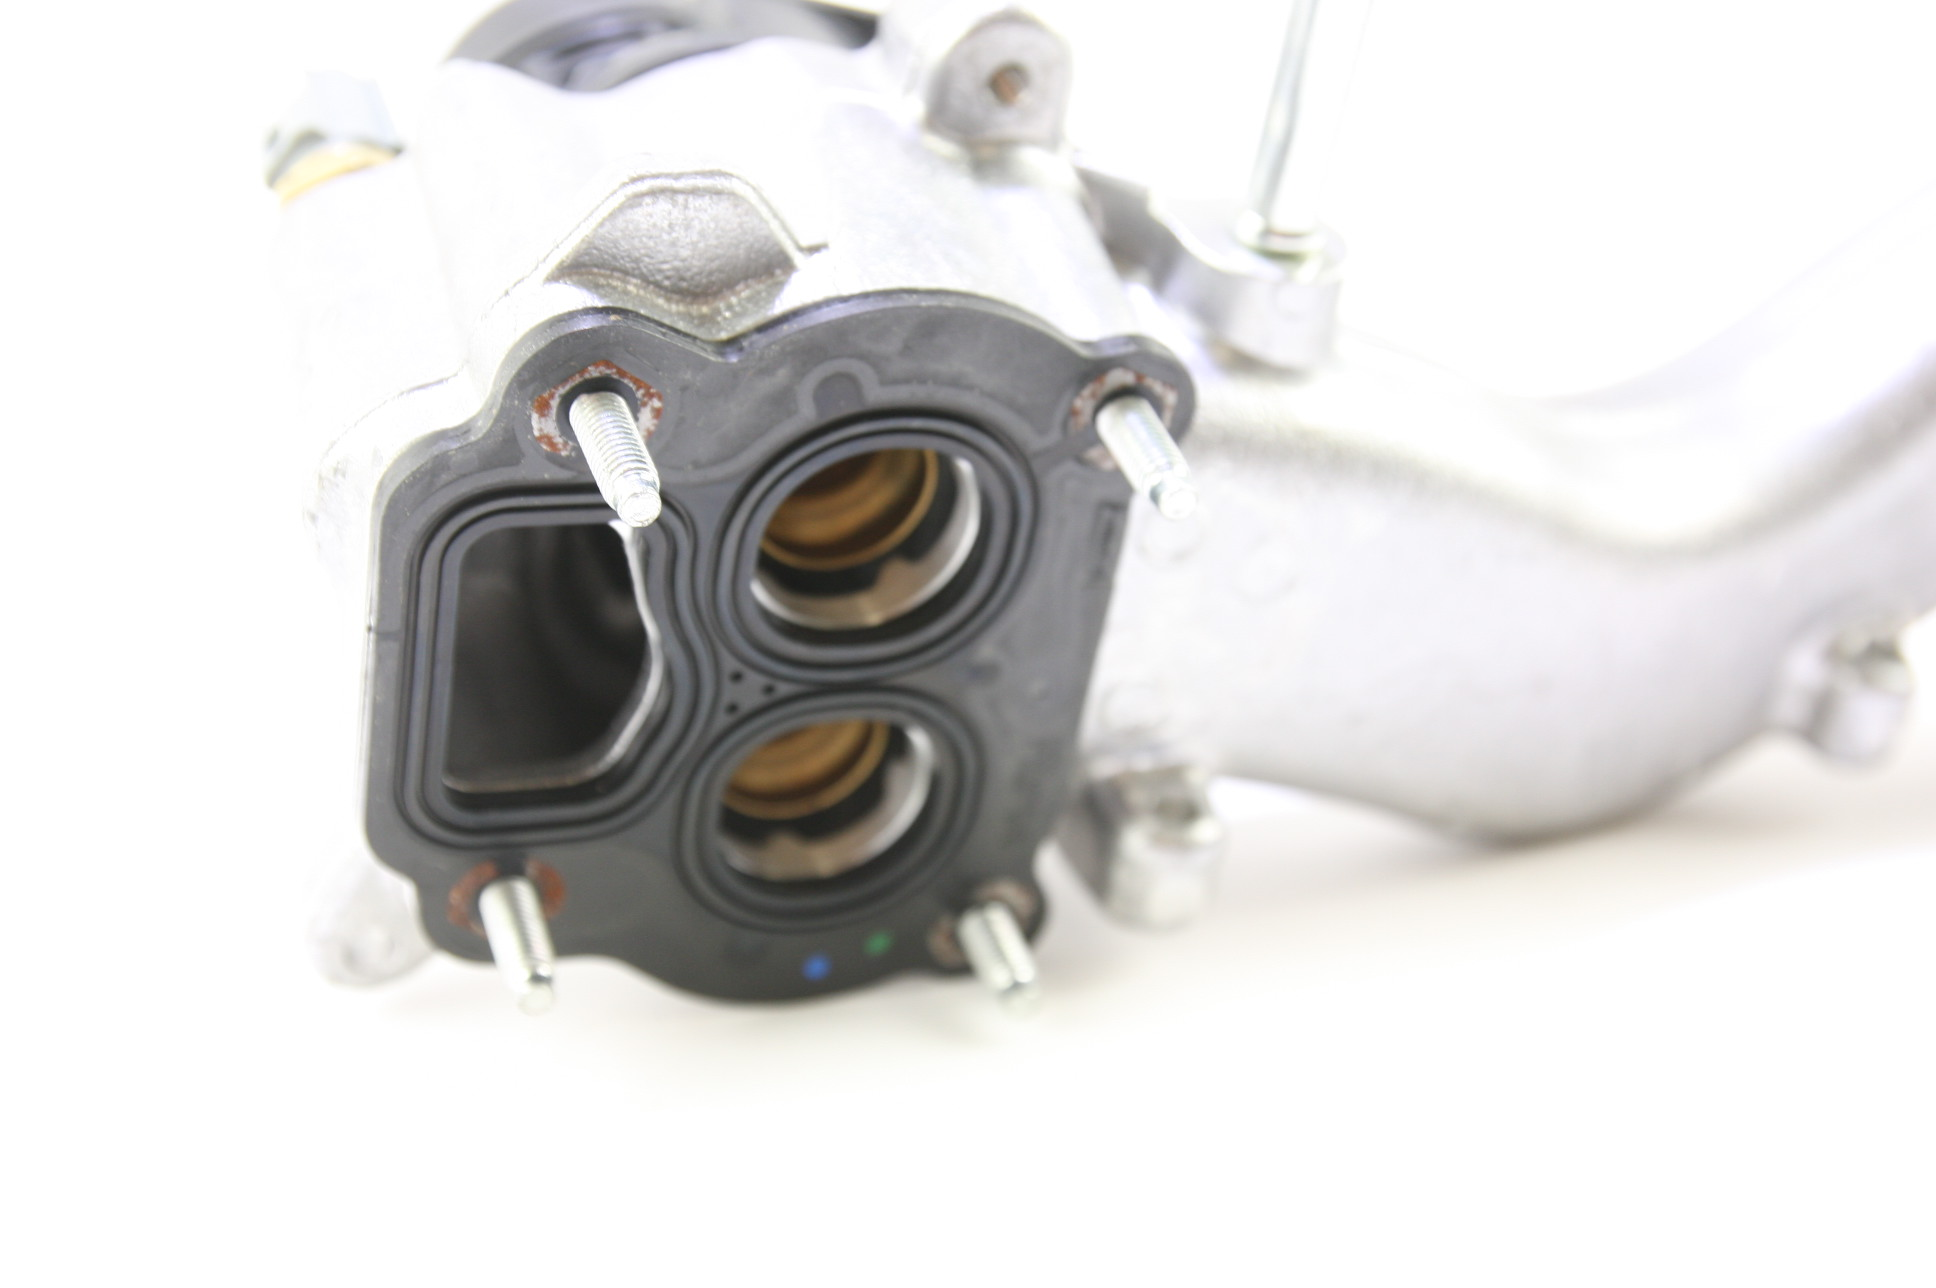 ~ New OEM BC3Z8C368B Ford 11-17 Super Duty Engine Coolant Thermostat Housing - image 10